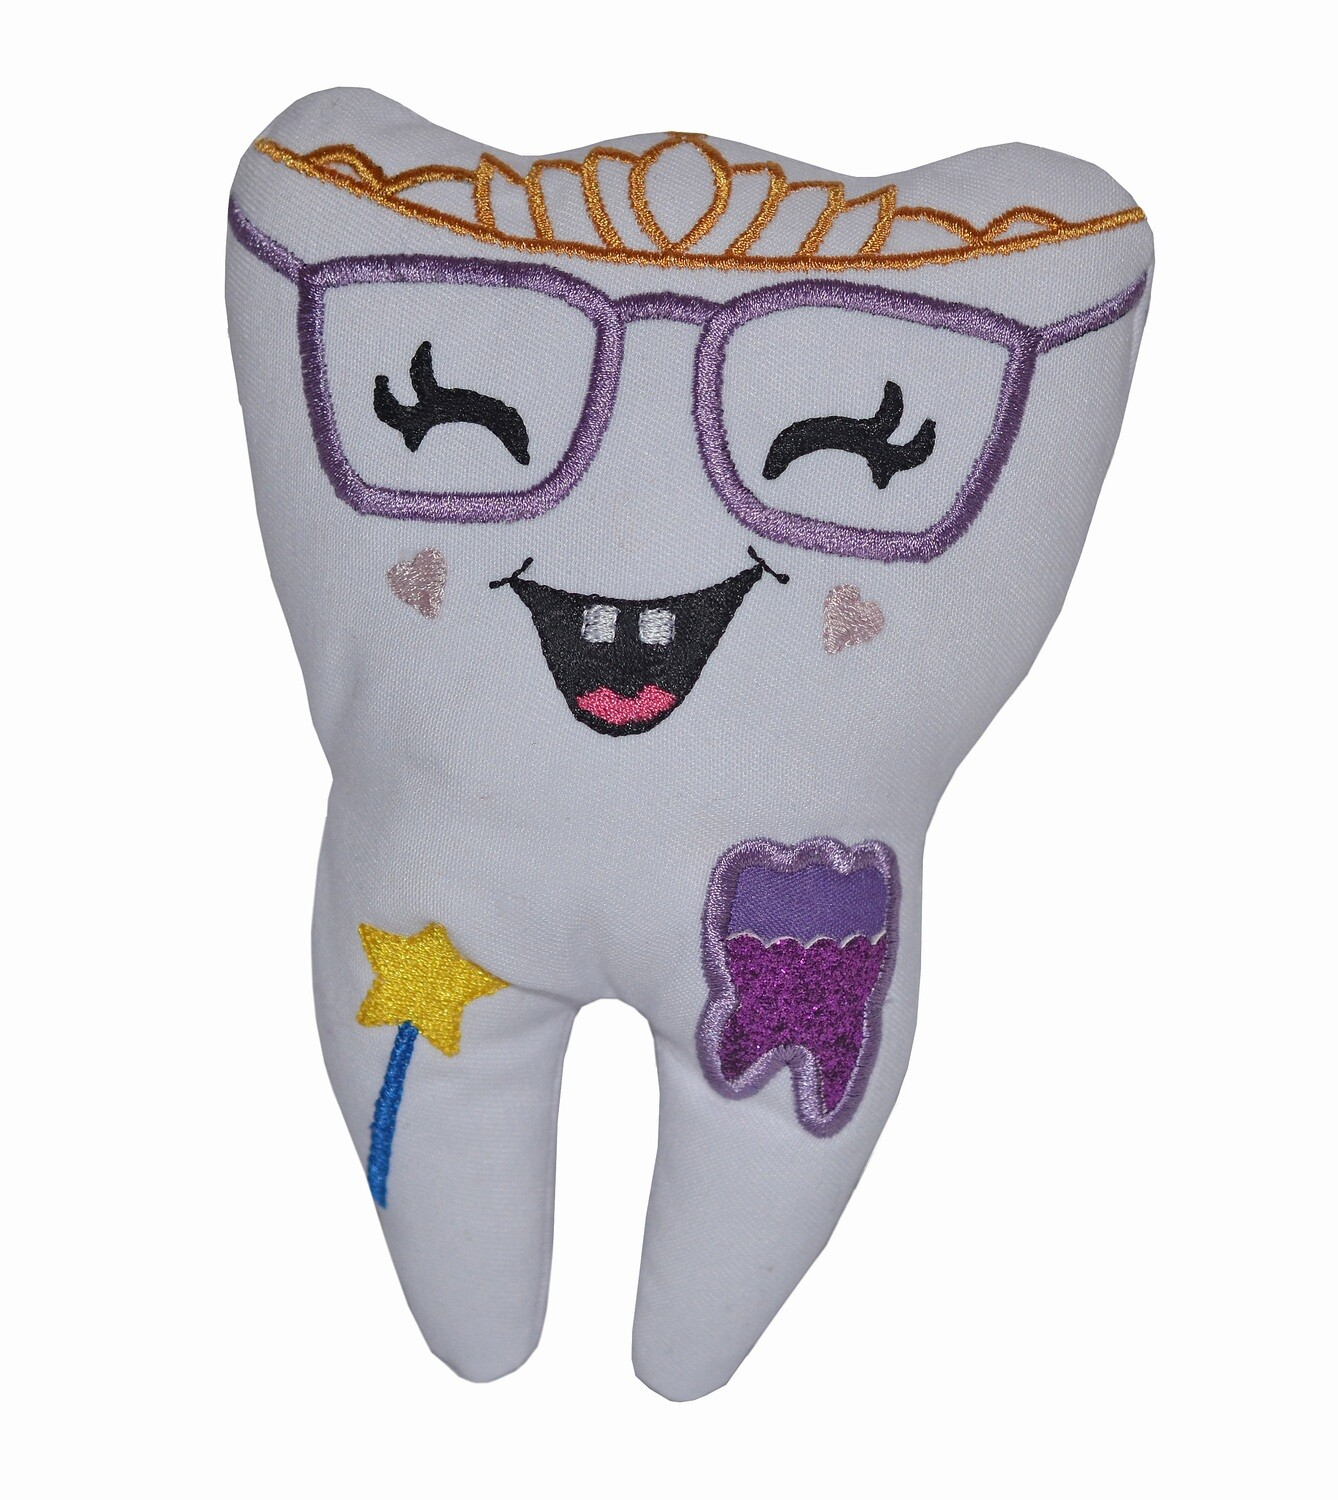 Tooth fairy pillow & Glasses, coin pocket custom made gift for kids girls, baby milk teeth loss comforter, Diva door hanging tooth pillow UK